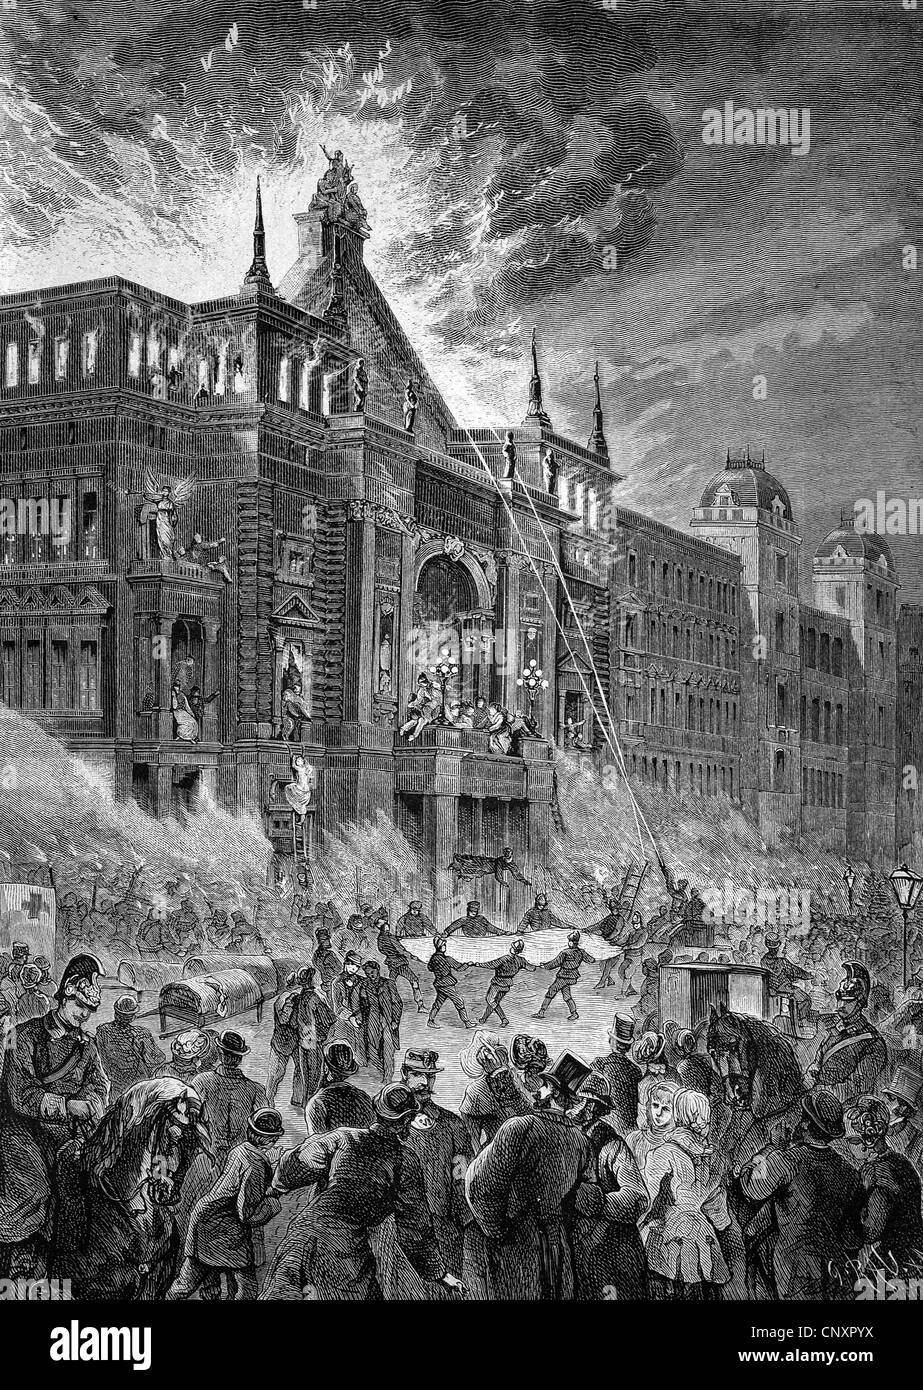 The fire at the Ringtheater theatre in Vienna on 8 December 1881, one of the largest fires of the 19th century in - Stock Image